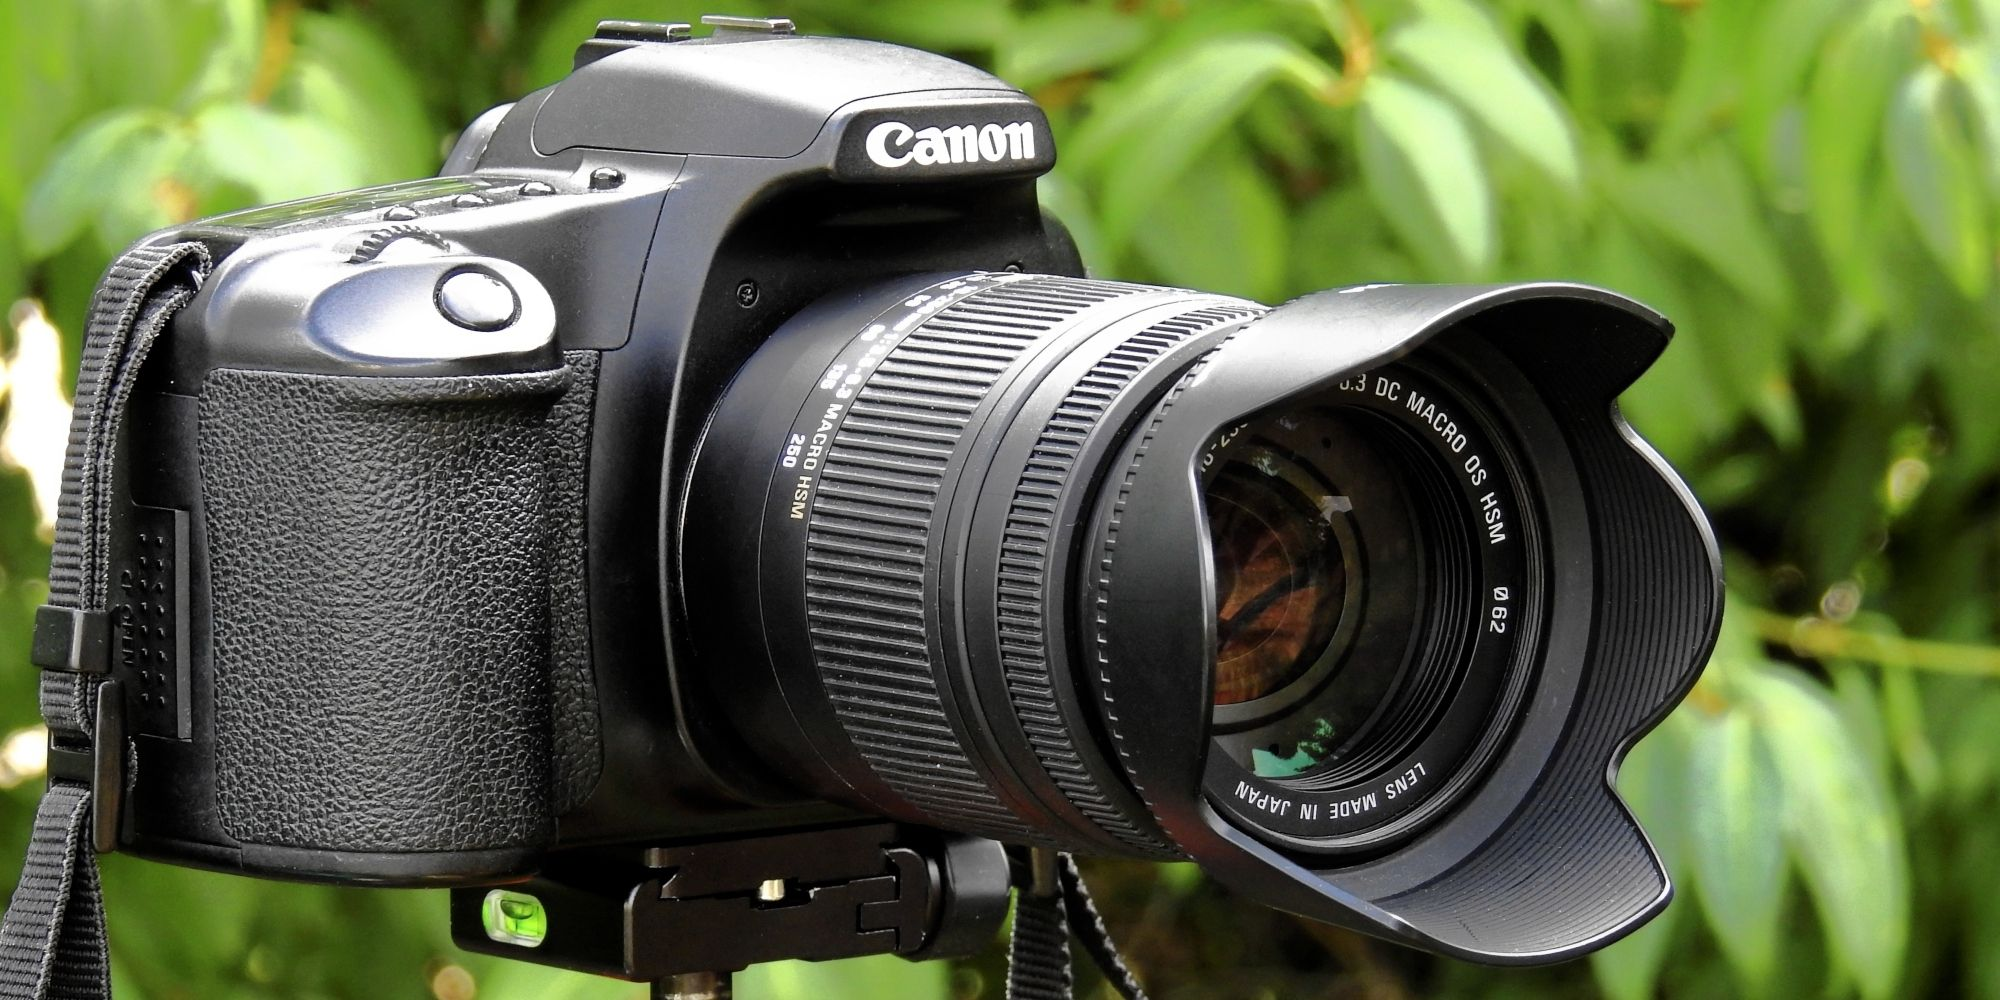 Canon EOS 750D Review - Hands-on First Look - What Digital